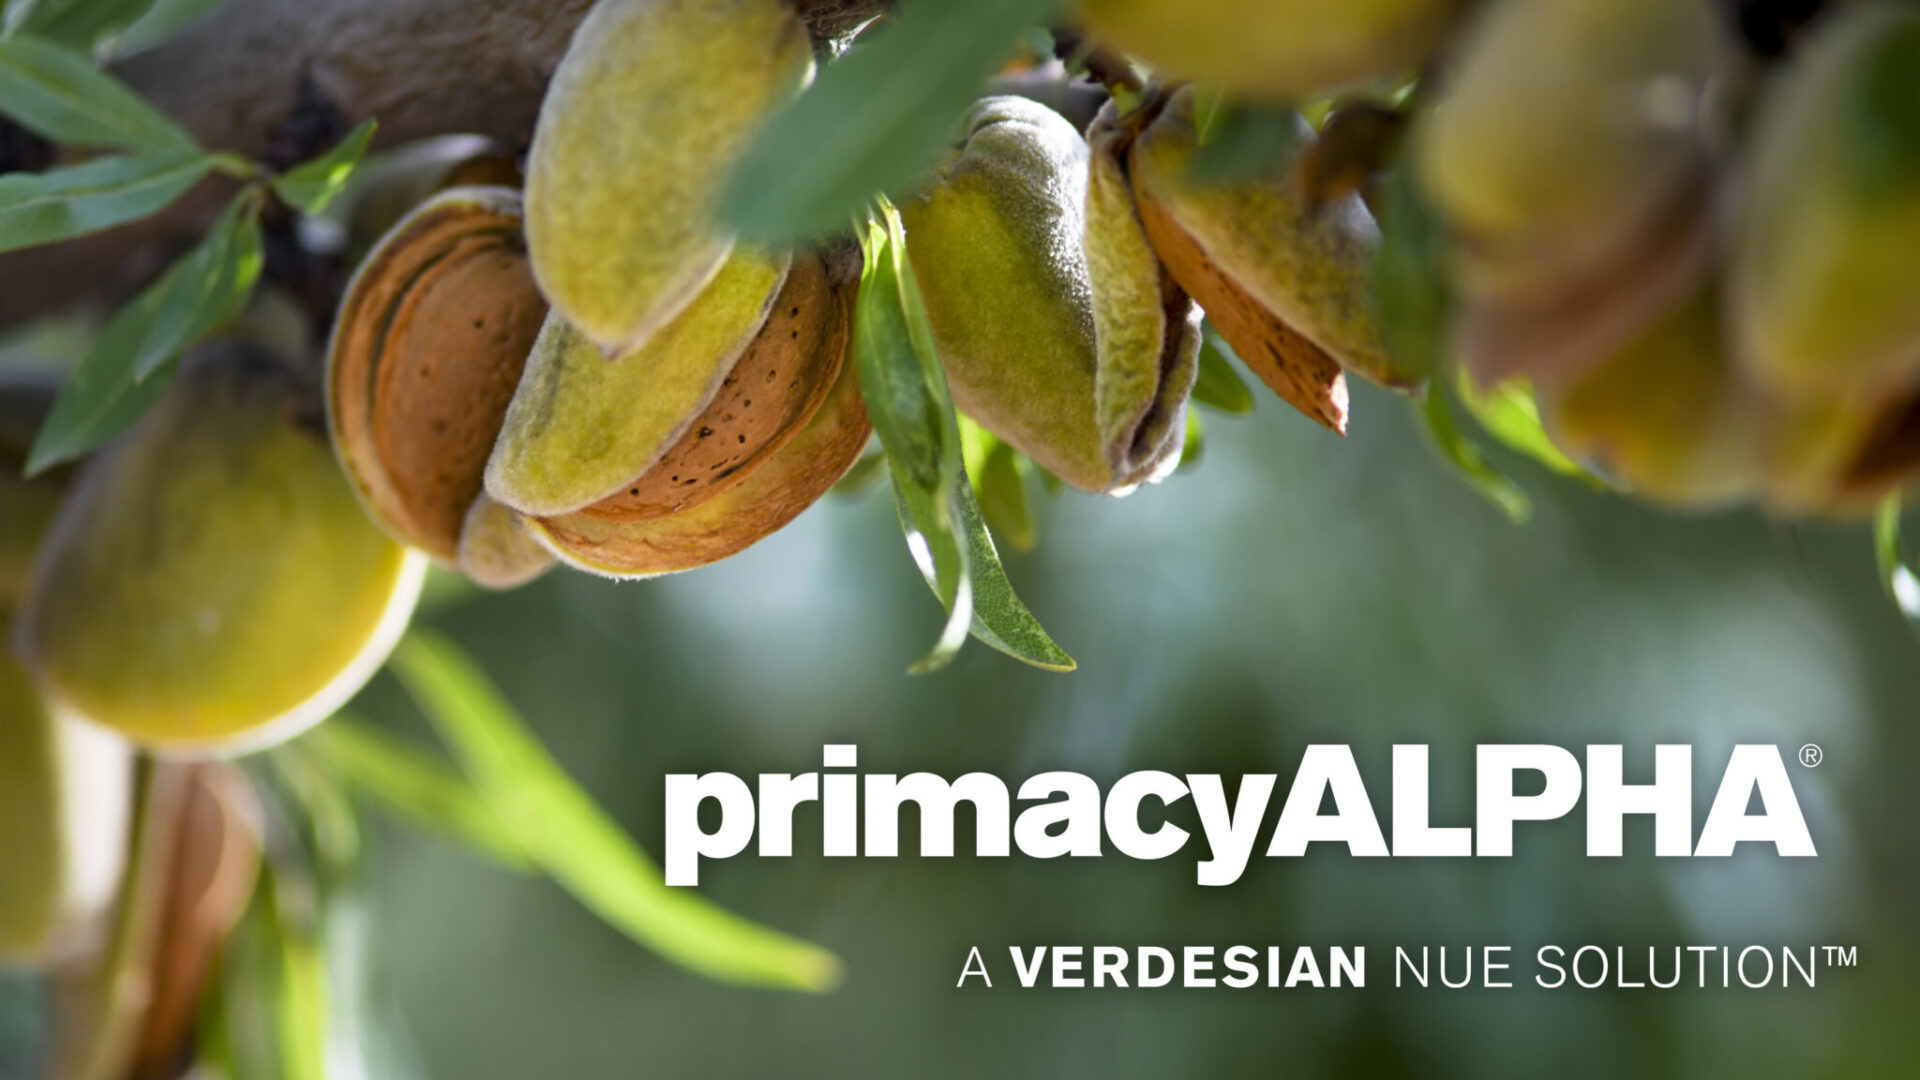 21.0123 Primacy ALPHA 1920×1080 web banner Almond